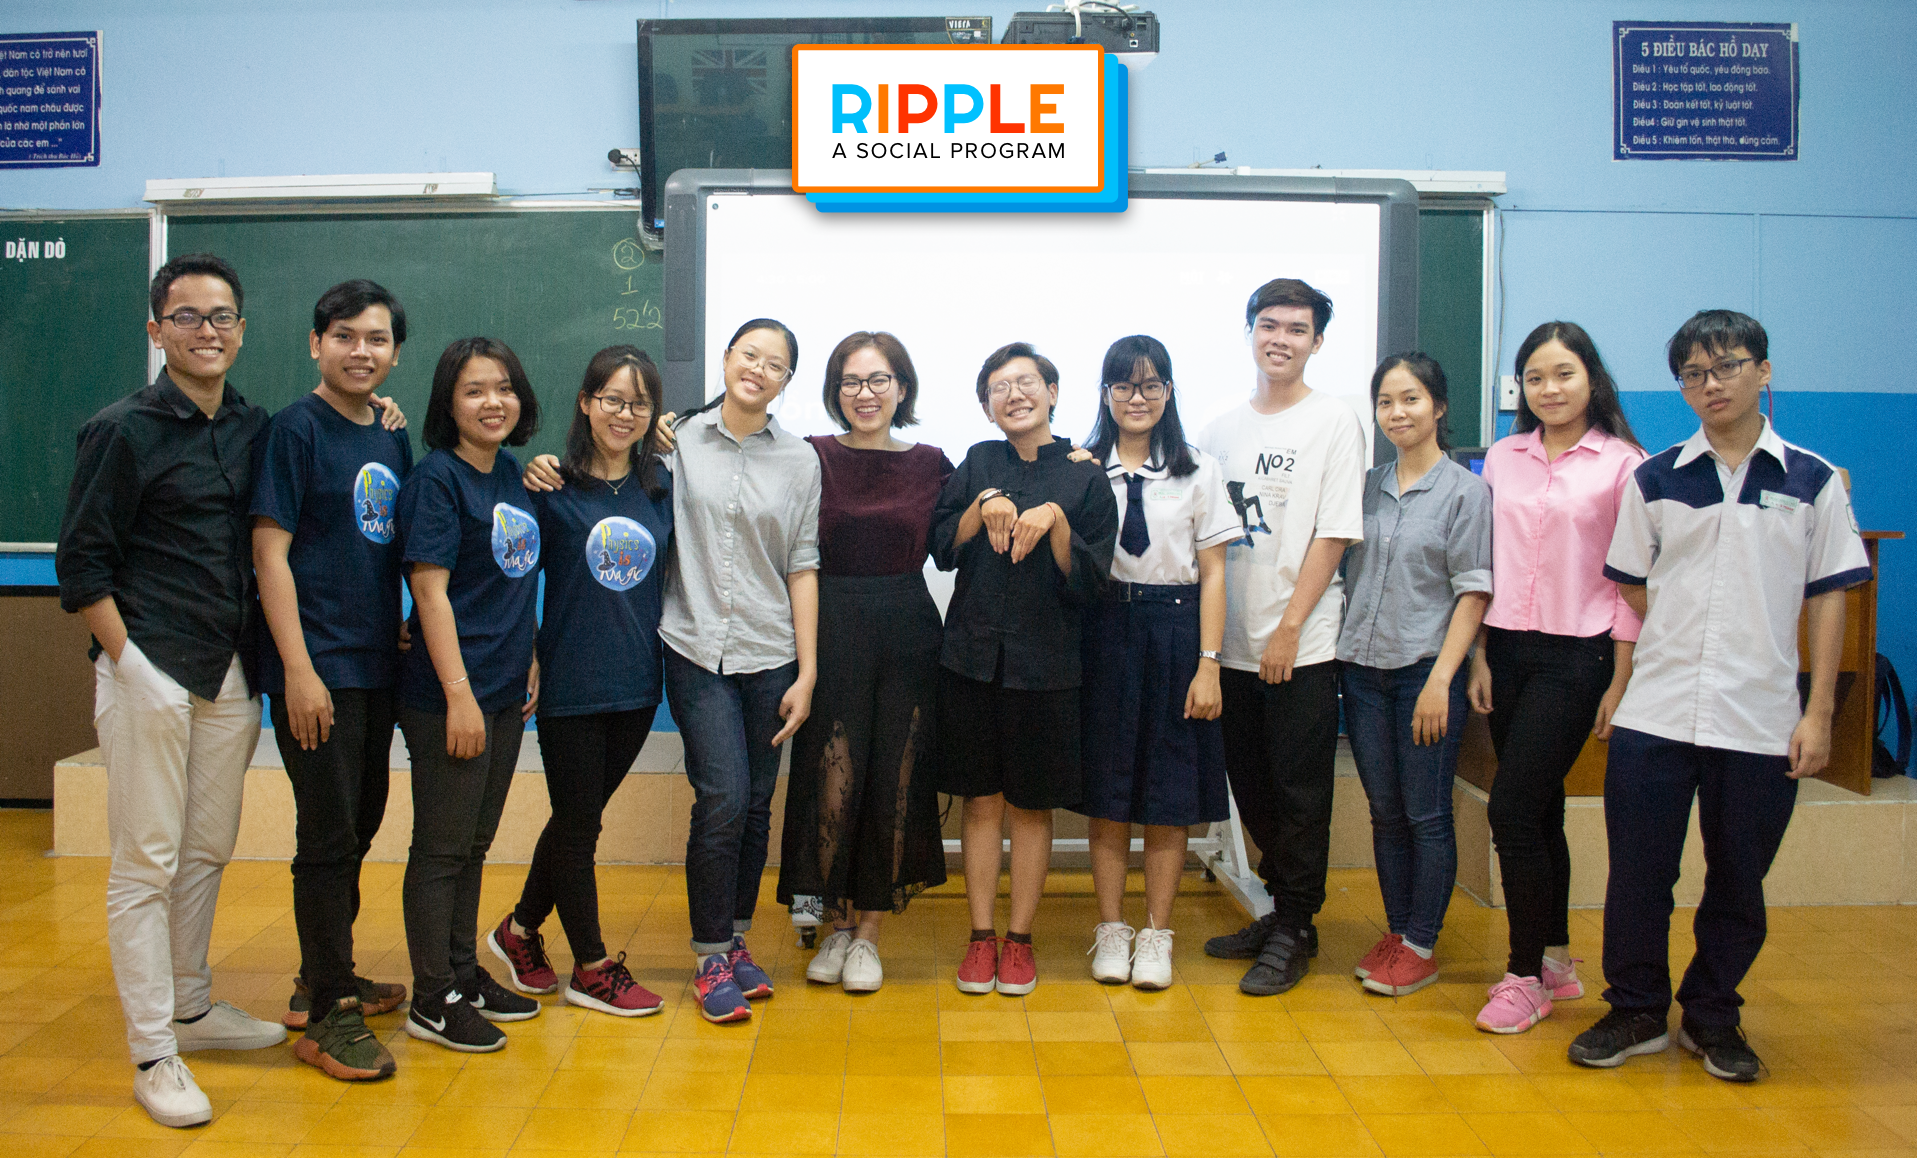 Ripple workshop 2, June 2018, with the shortlisted teams that were based in Ho Chi Minh City, Vietnam.